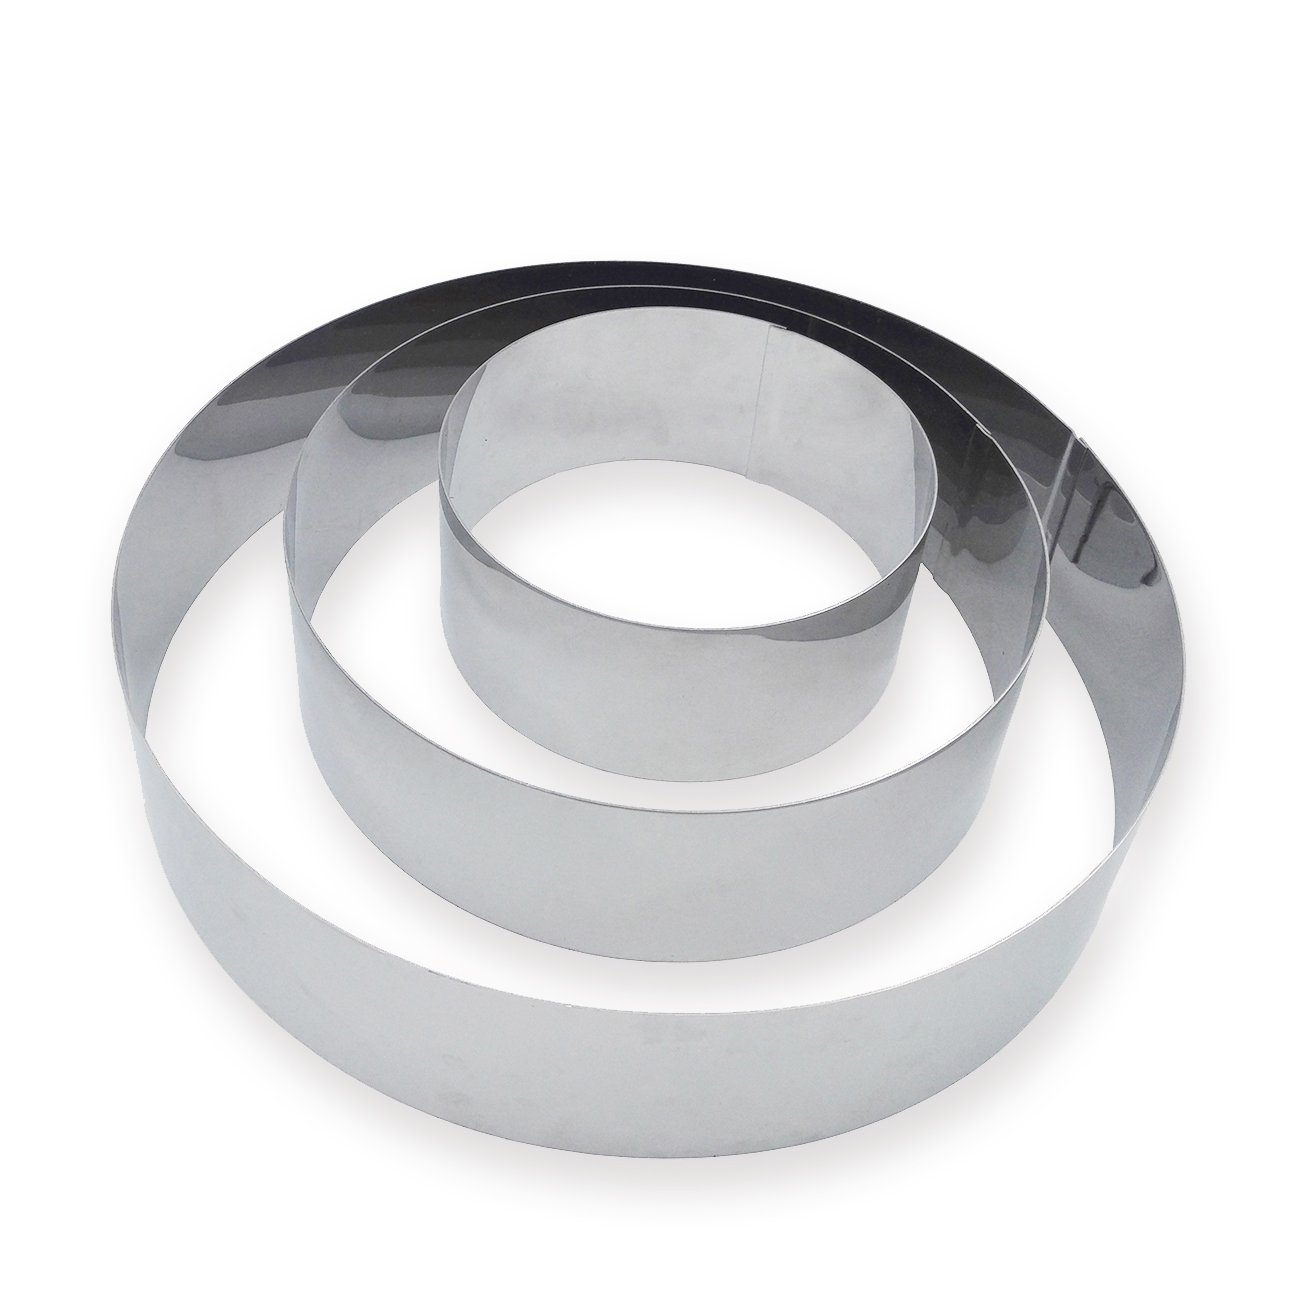 3 Tier Round Multilayer Anniversary Birthday Cake Baking Pans,Stainless Steel 3 Sizes Rings Round Molding Mousse Cake Rings(Round-shape,Set of 3) by FunWhale (Image #3)